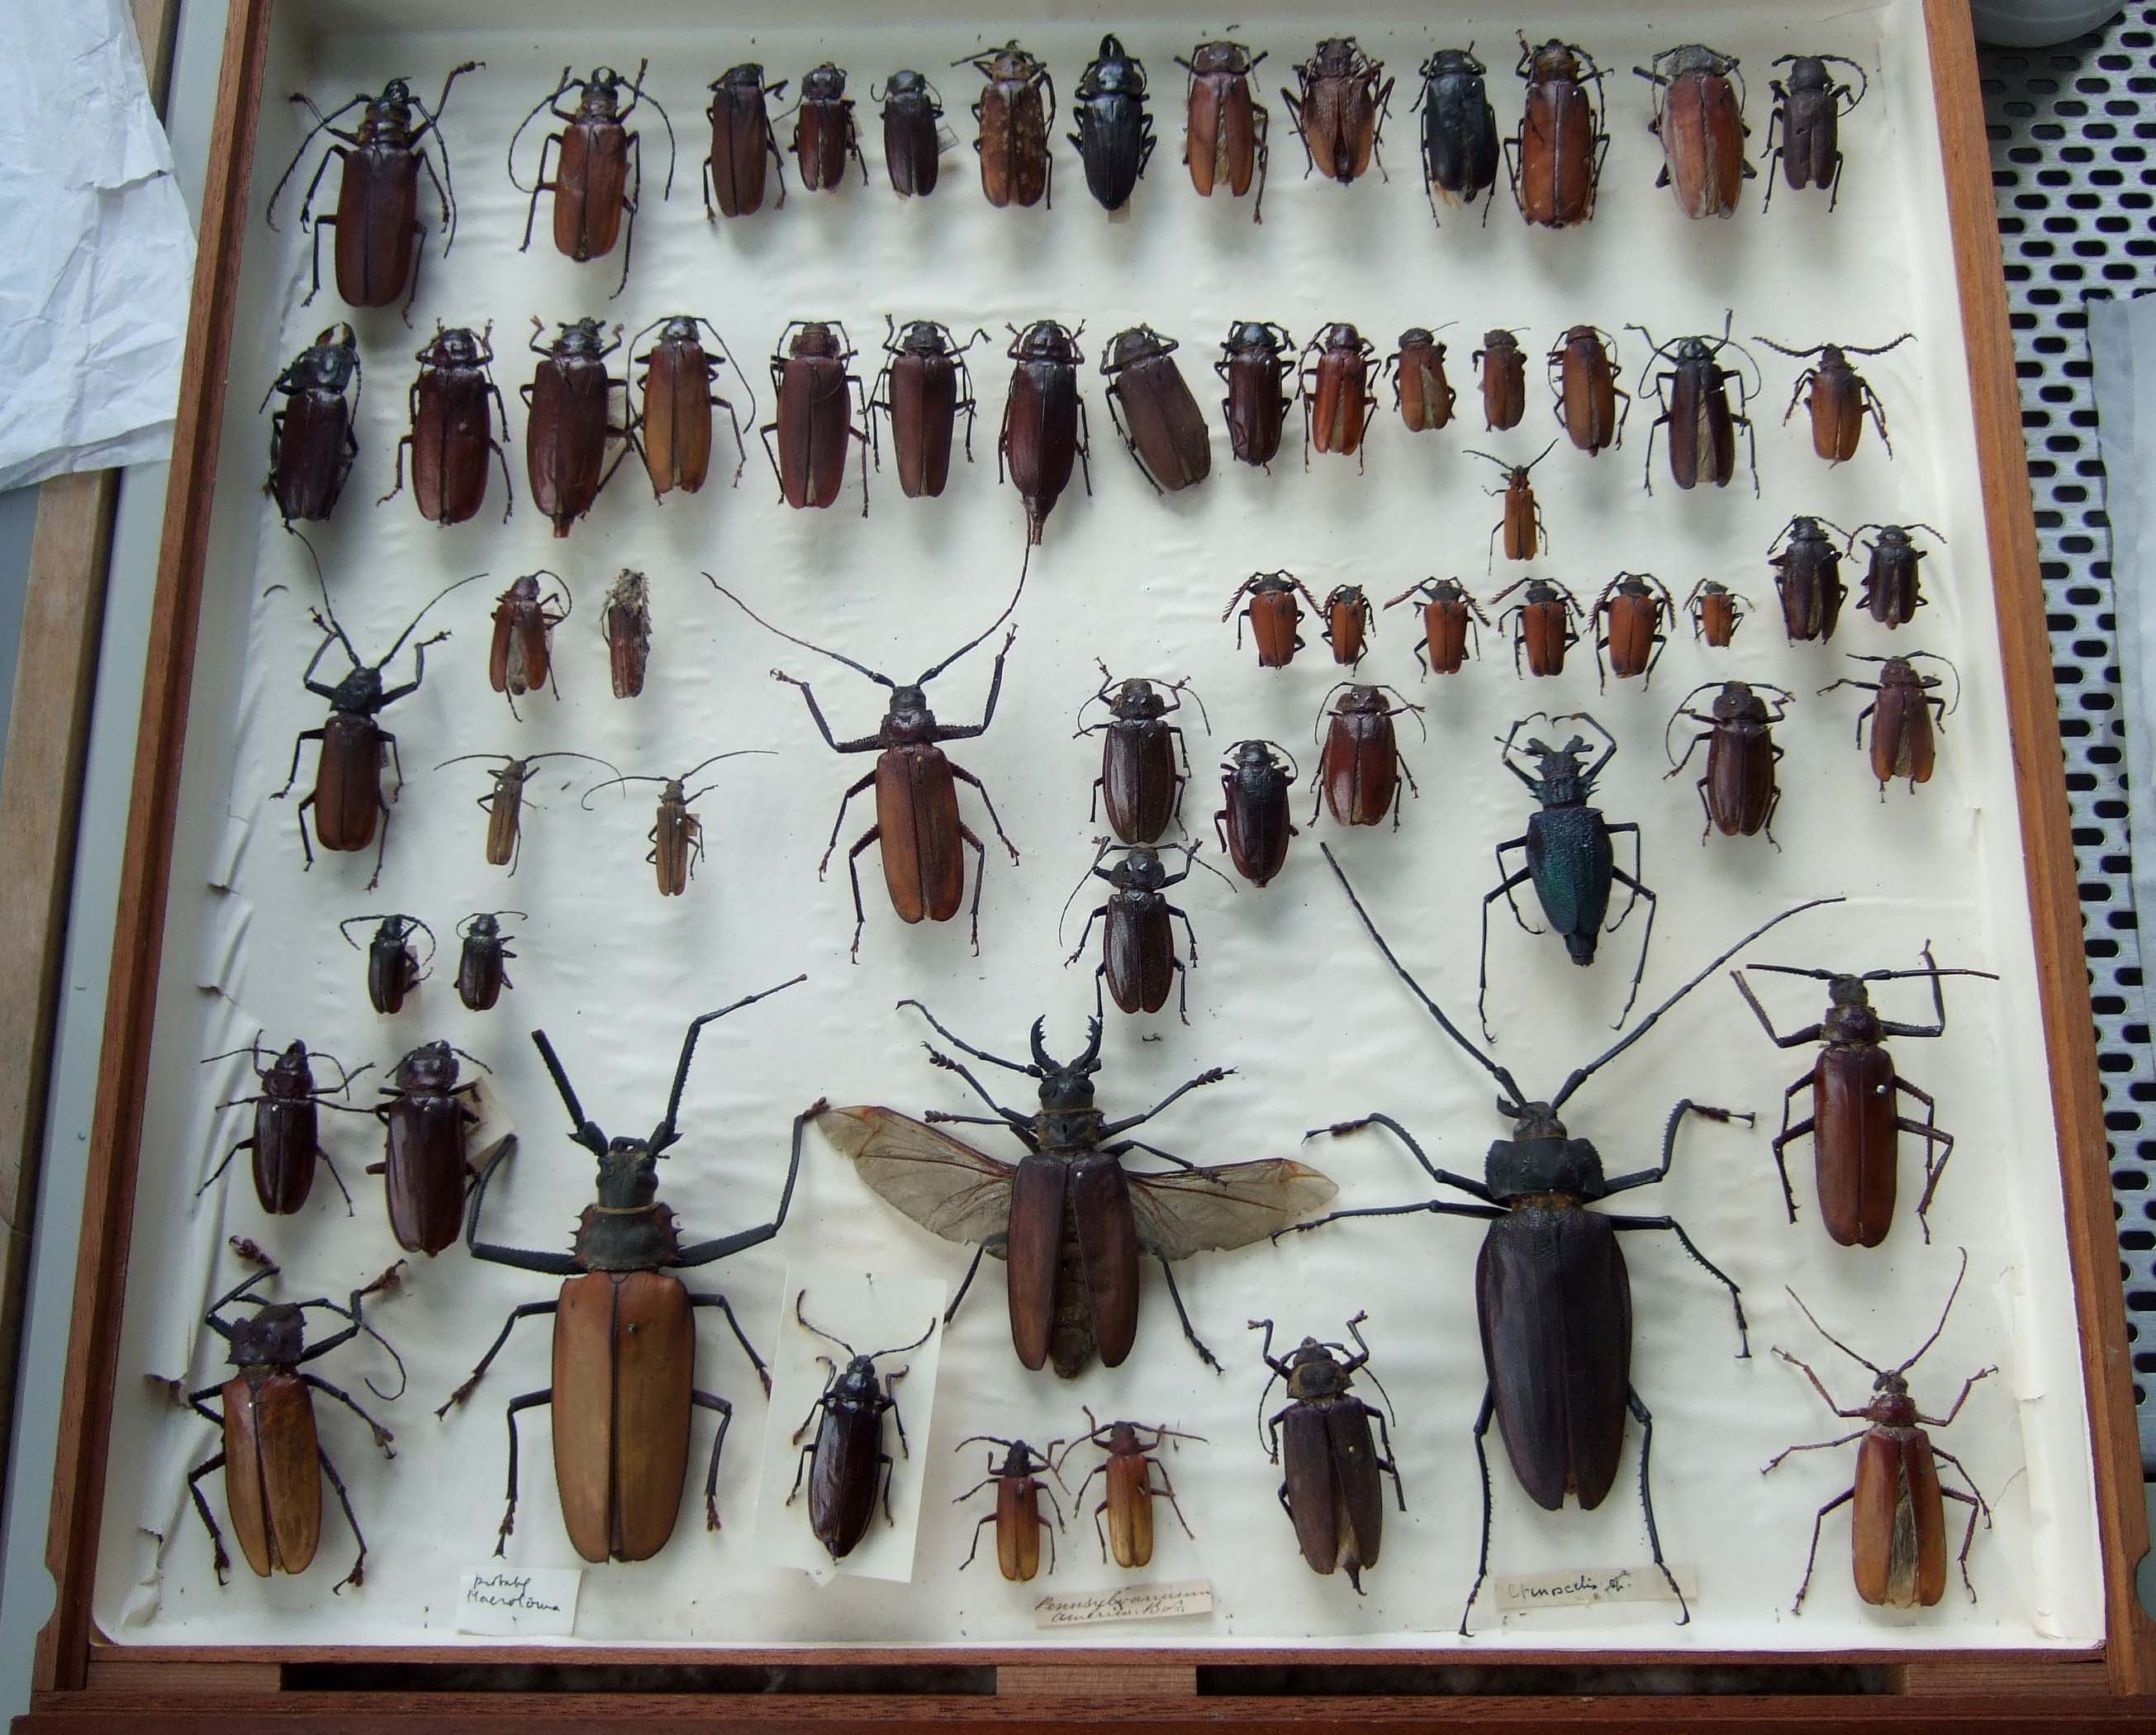 Ento Drawer 004 Jpg 2610 2100 Beetle Entomology Collection Cabinet Of Curiosities